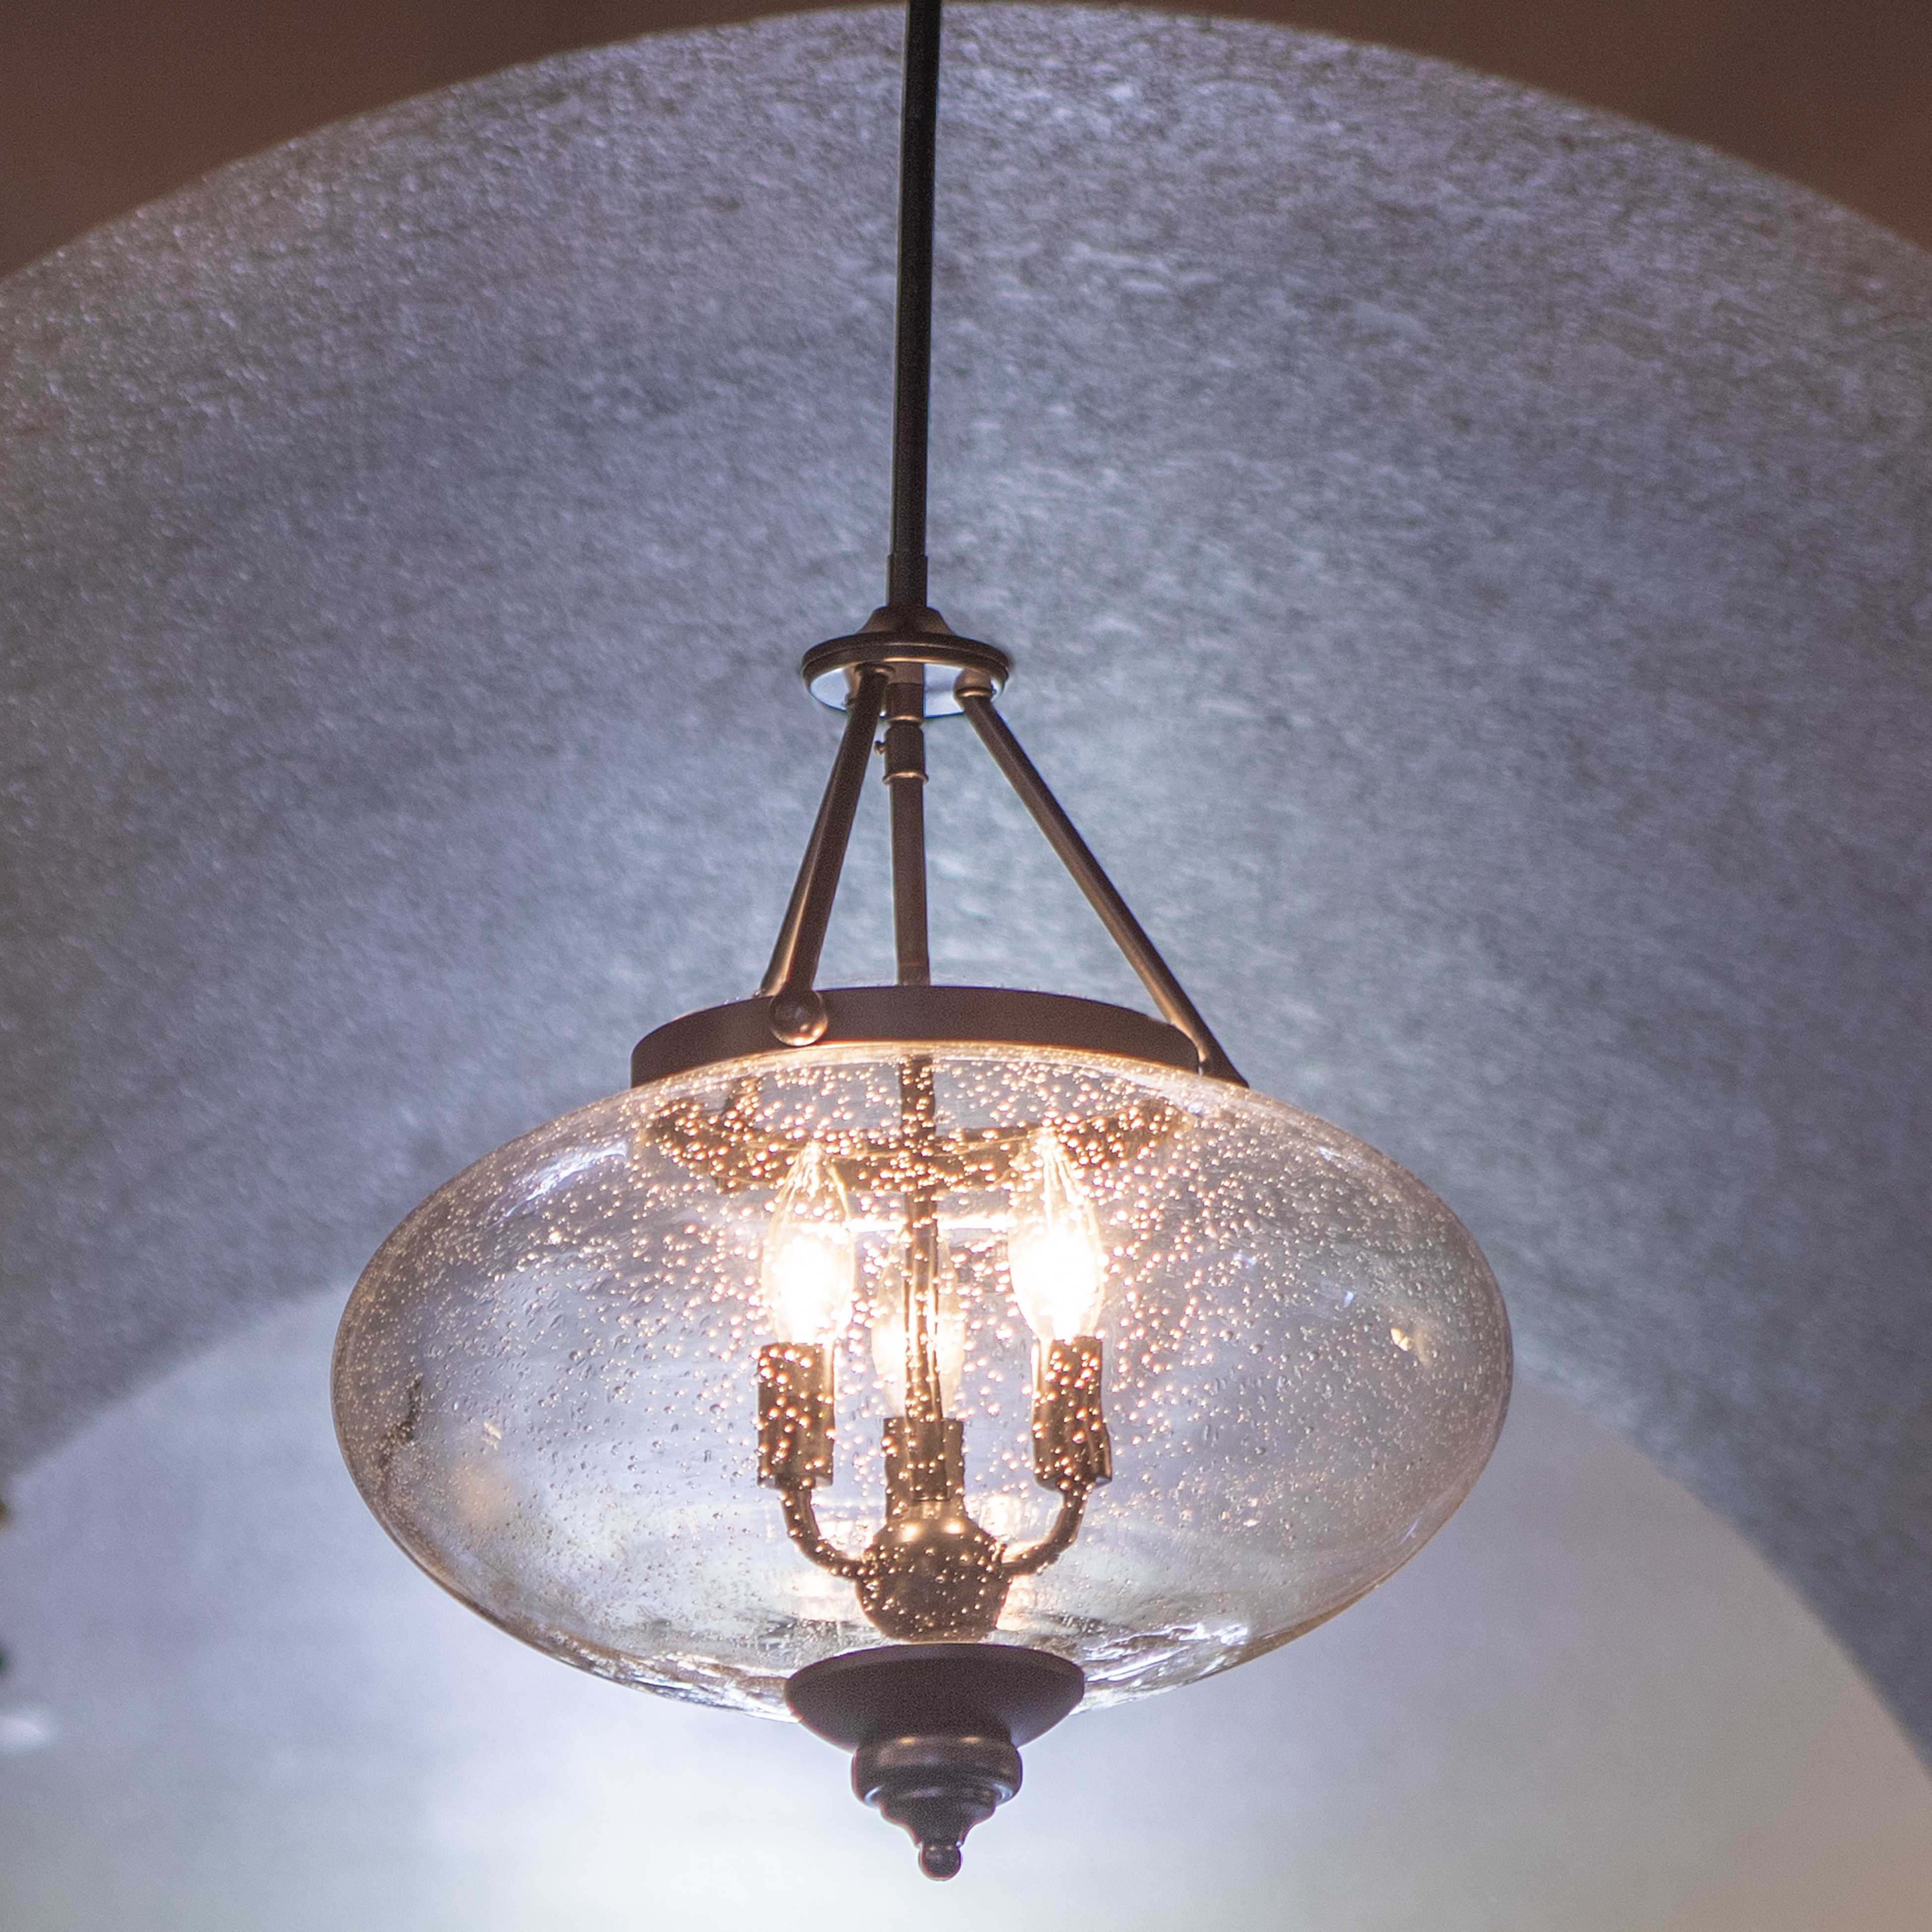 Farmhouse & Rustic Charlton Home Chandeliers (Gallery 15 of 20)